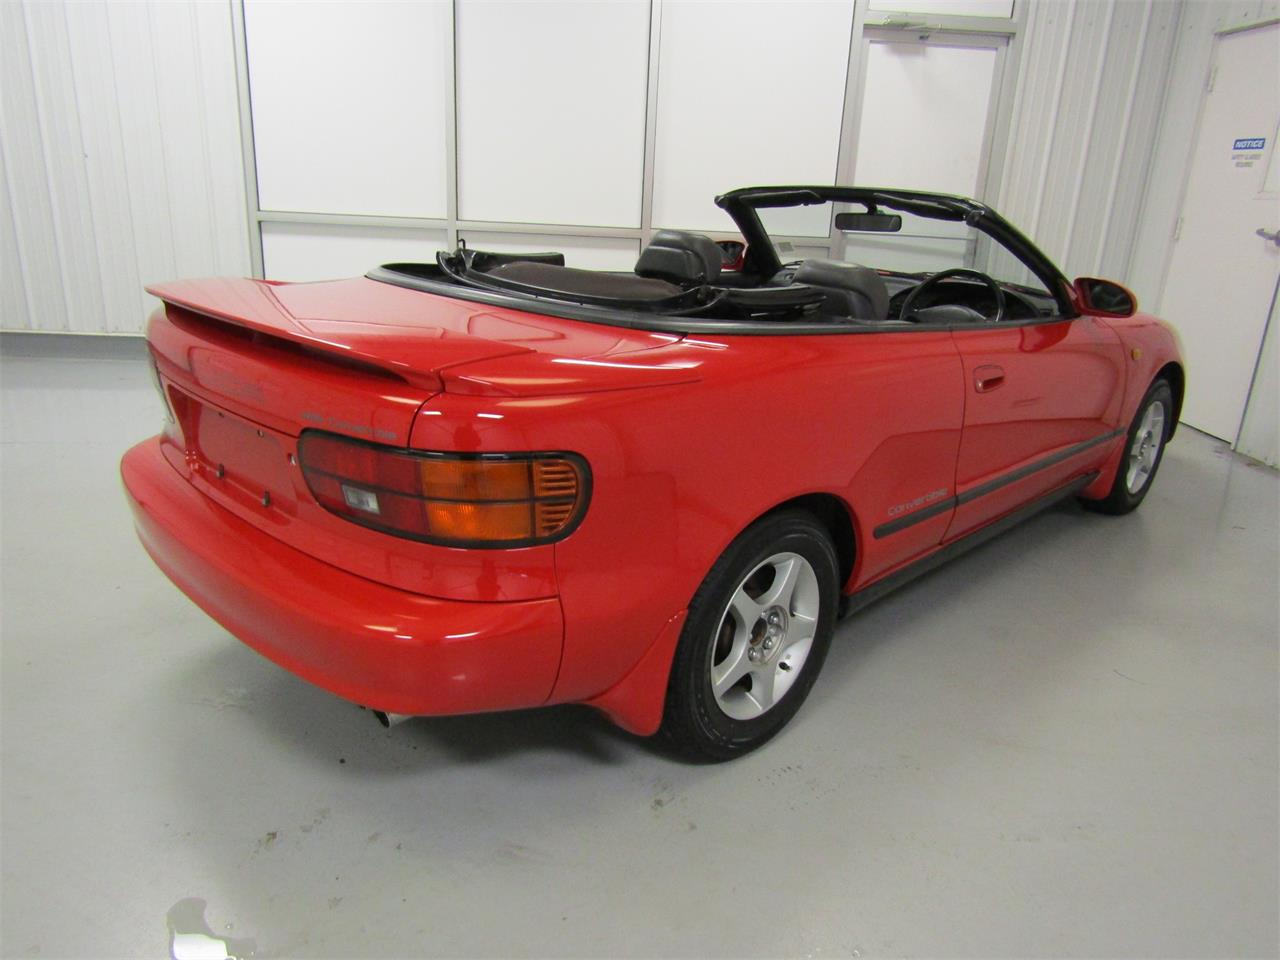 Large Picture of 1991 Celica - $9,999.00 Offered by Duncan Imports & Classic Cars - OV71